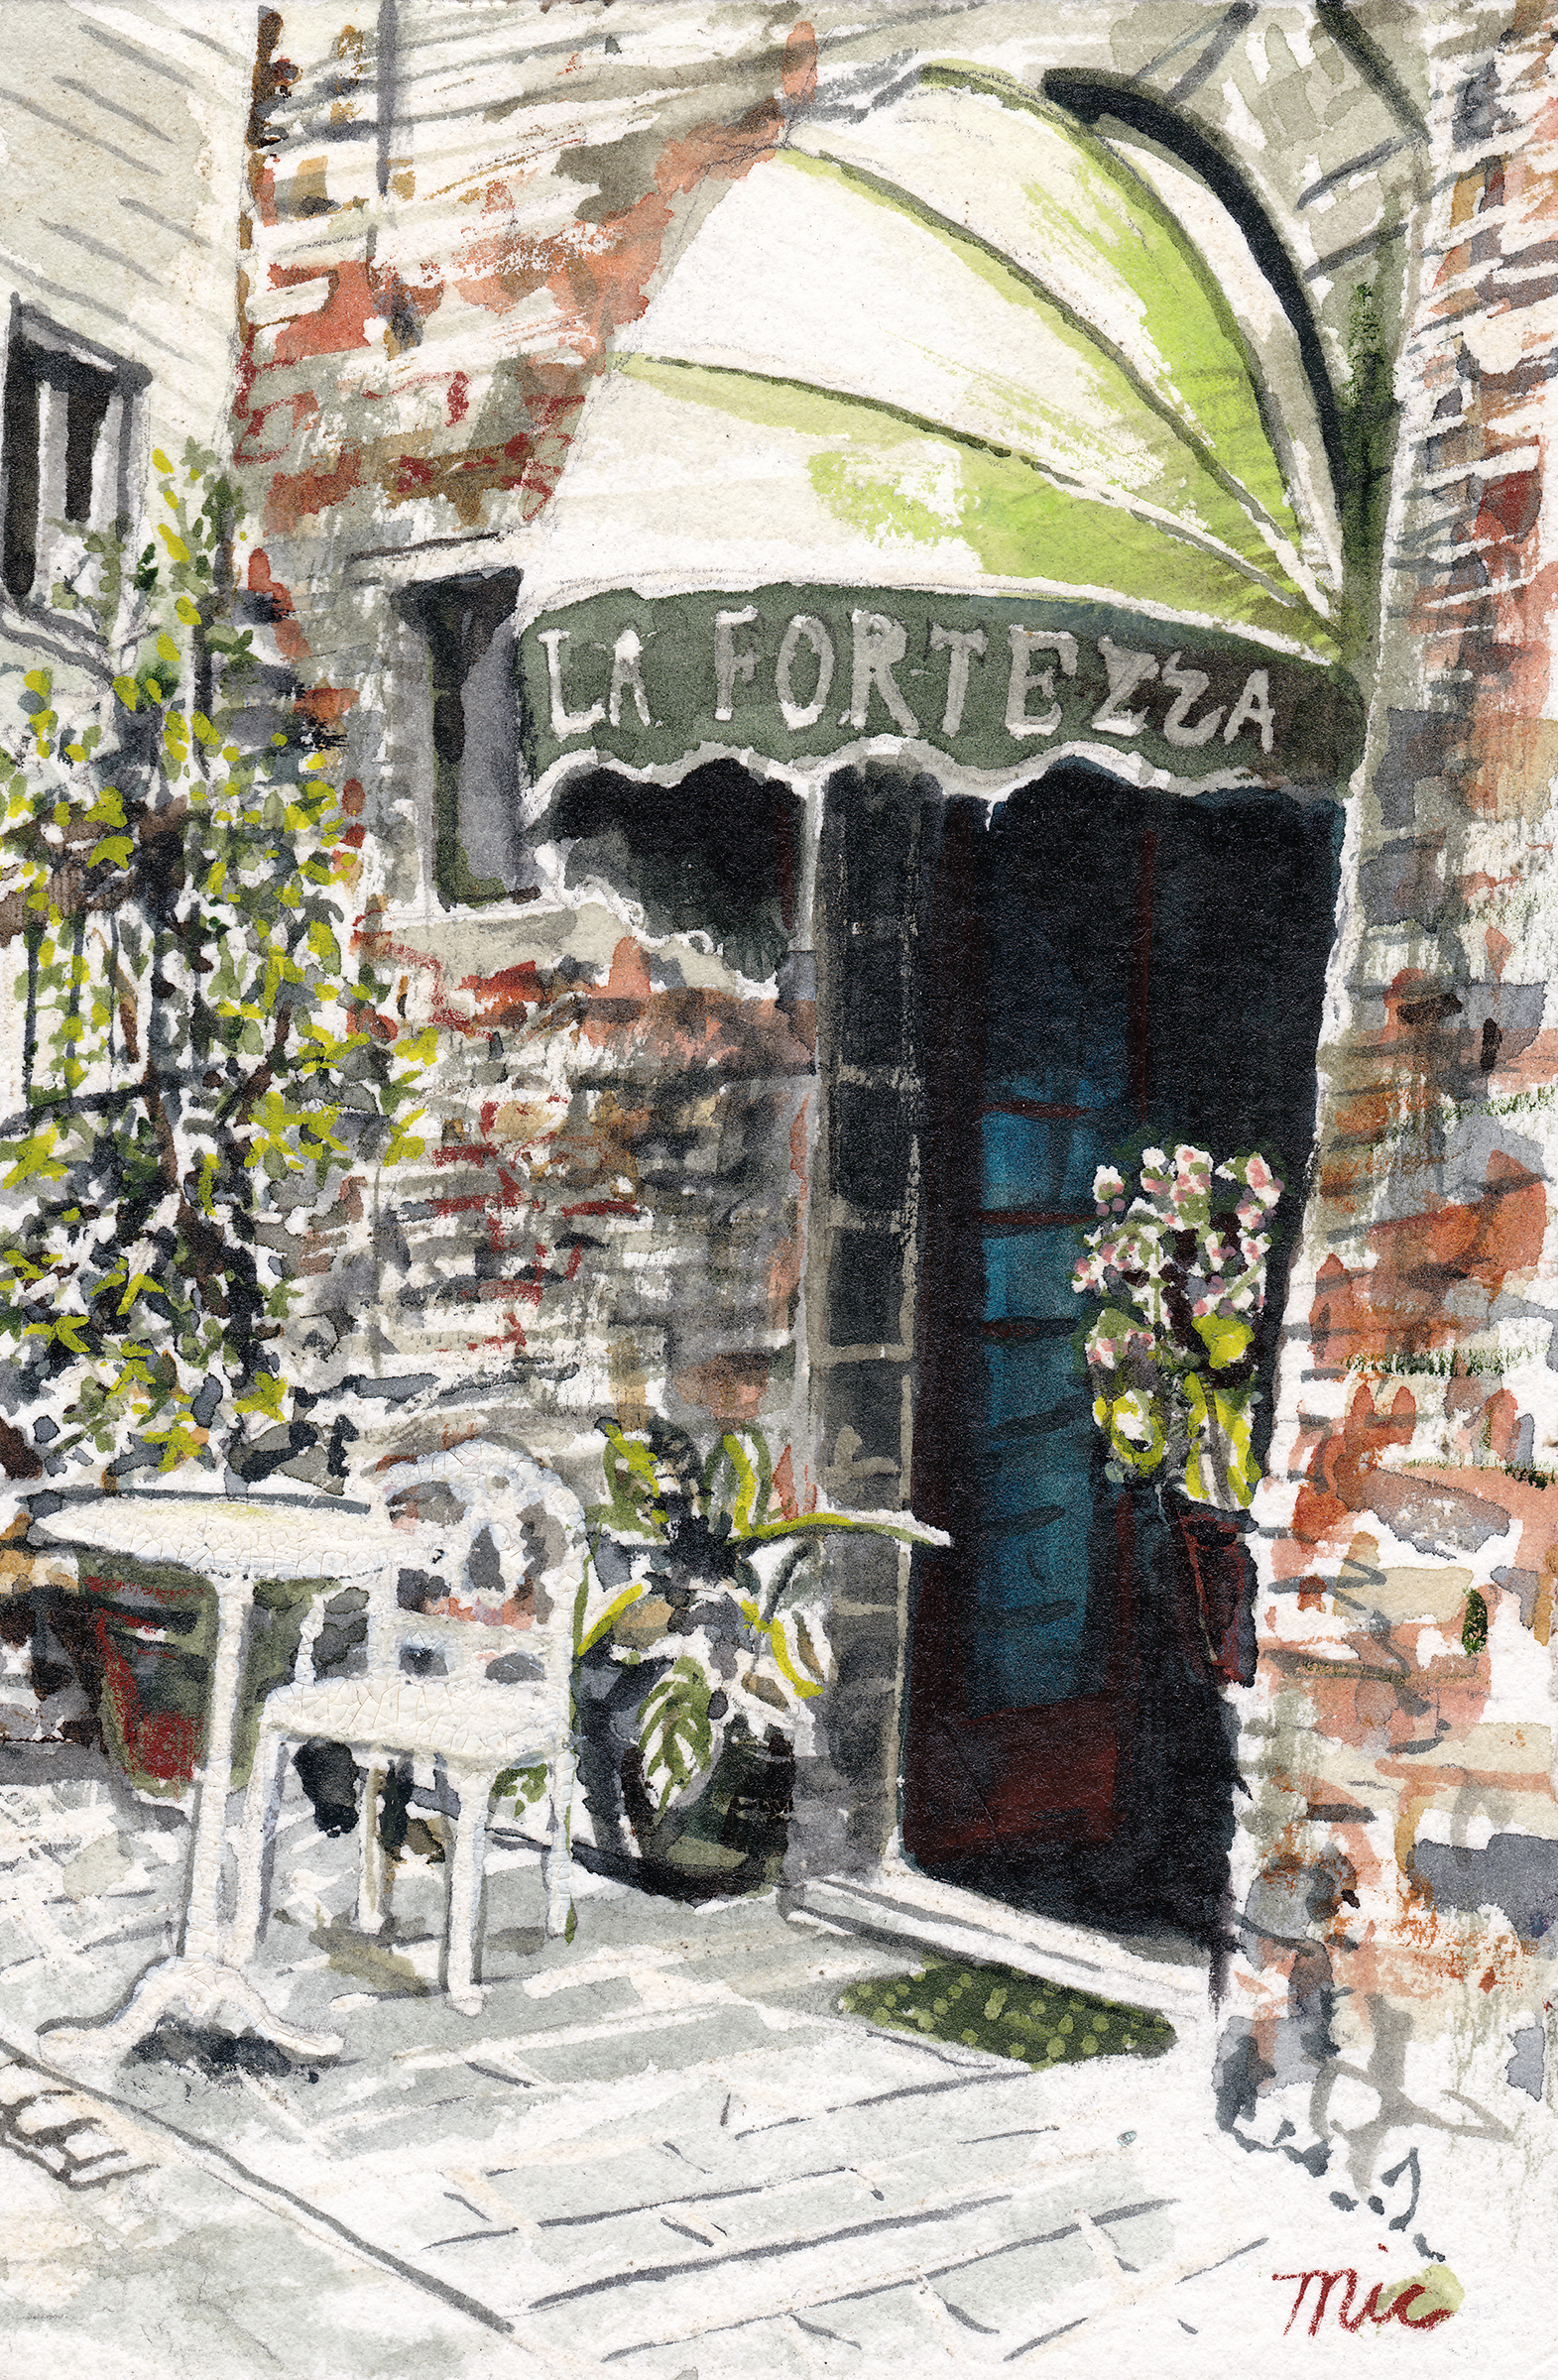 """La Porta Fortezza Assisi, Italy - Watercolor 4"" x 6"" $800Giclee Limited Edition and canvas prints are available. Please visit the prints gallery."